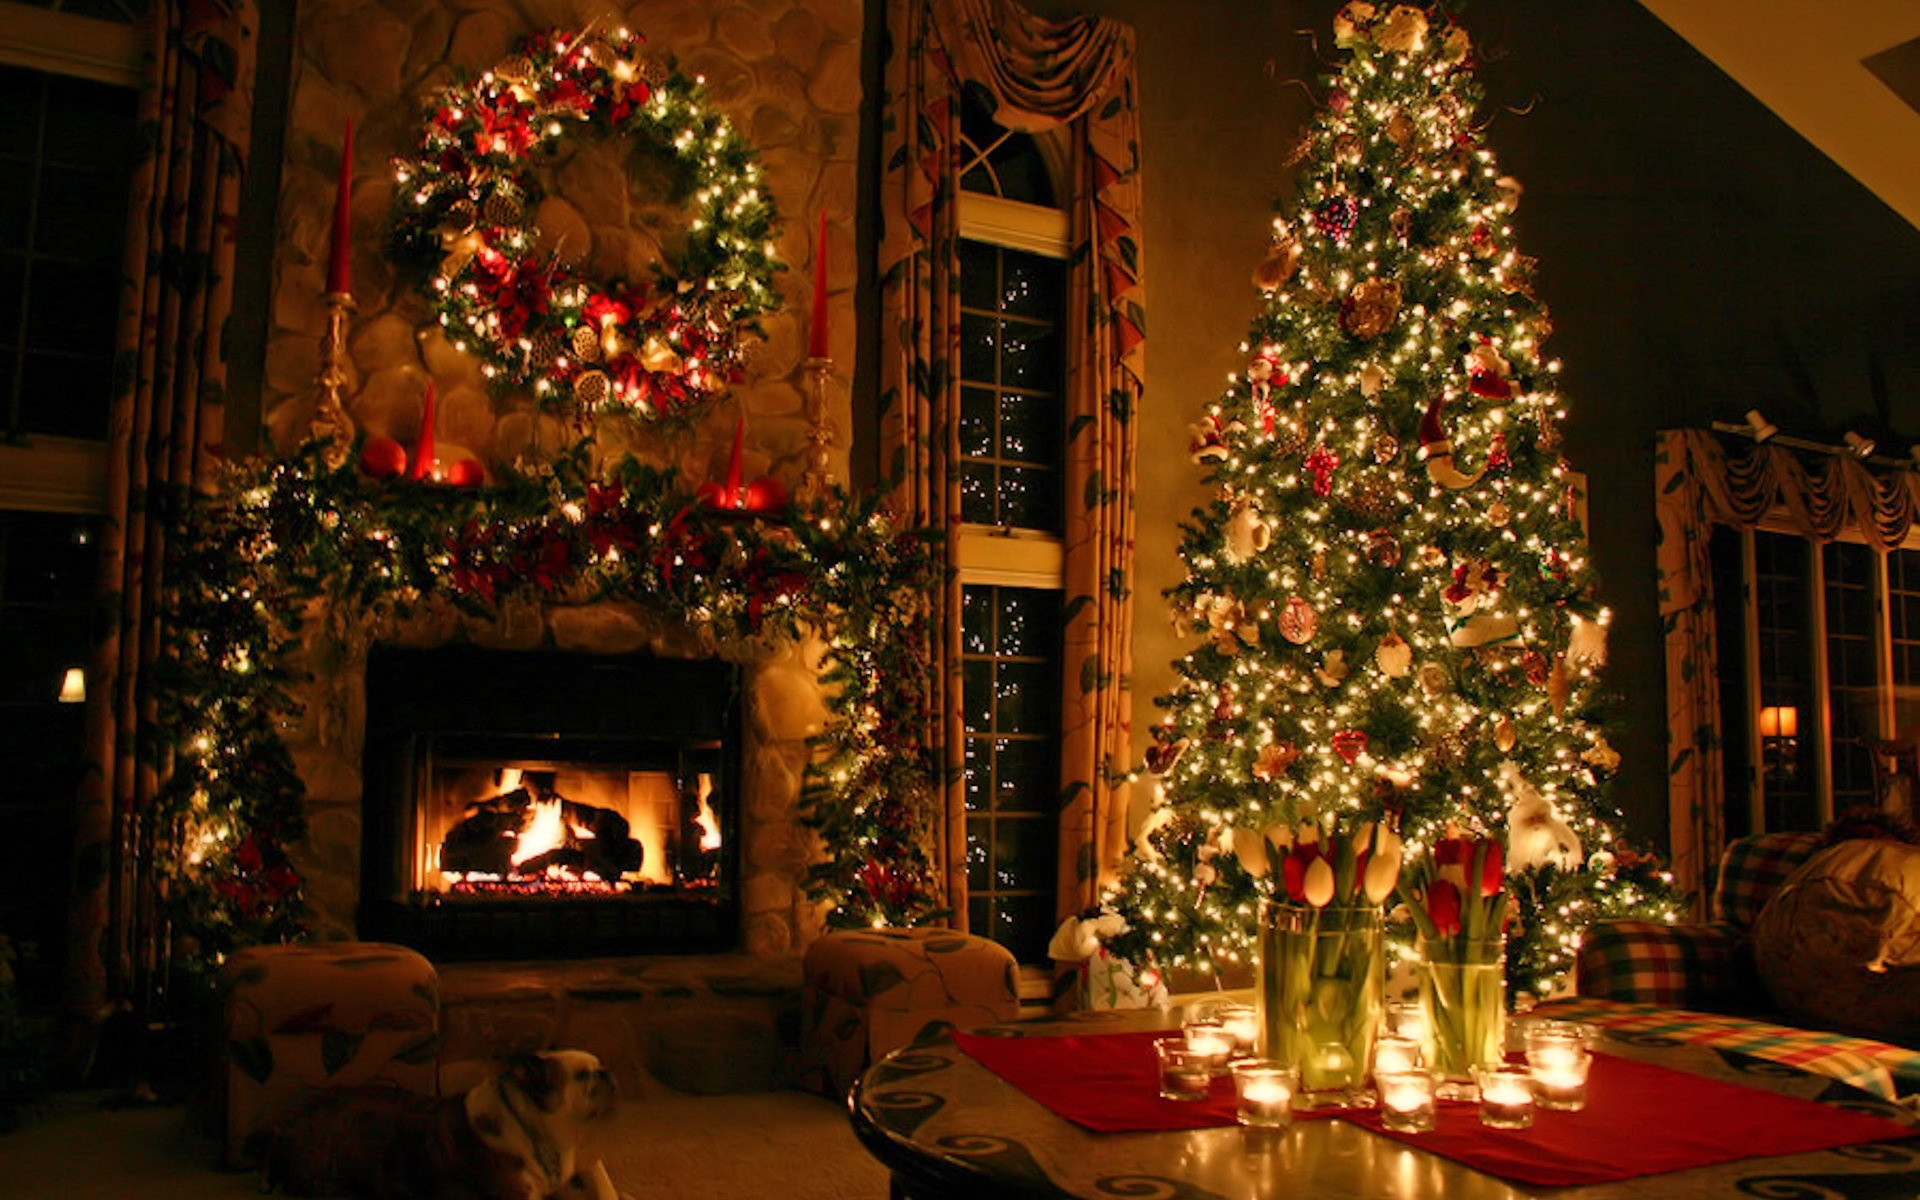 21 Stunningly Beautiful Christmas Desktop Wallpapers Web Design Mash 1920x1200